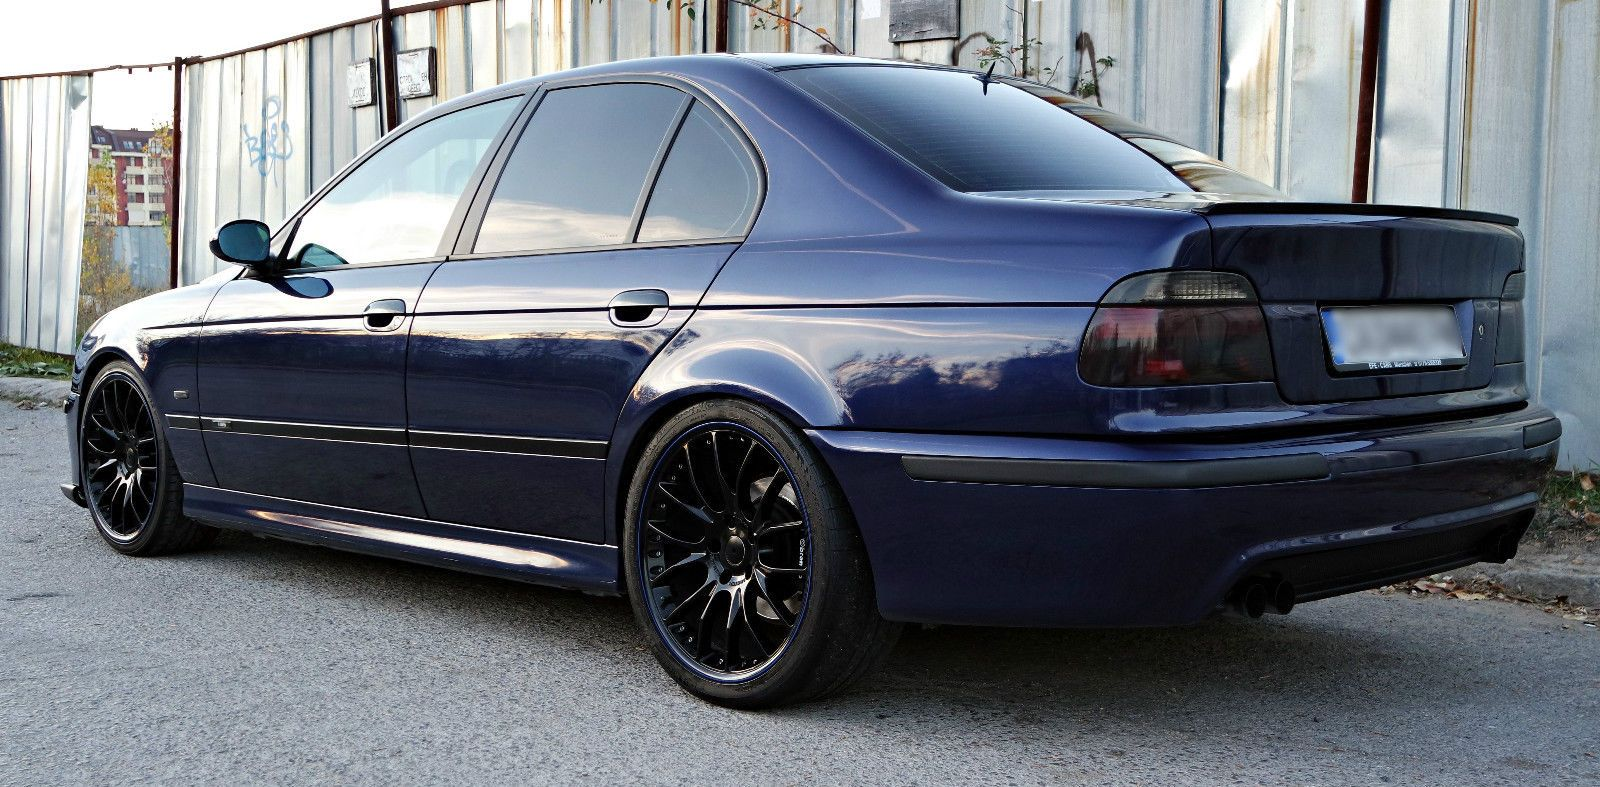 bmw e39 540i v8 tuning lpg in cars motorcycles vehicles cars bmw ebay future car build. Black Bedroom Furniture Sets. Home Design Ideas